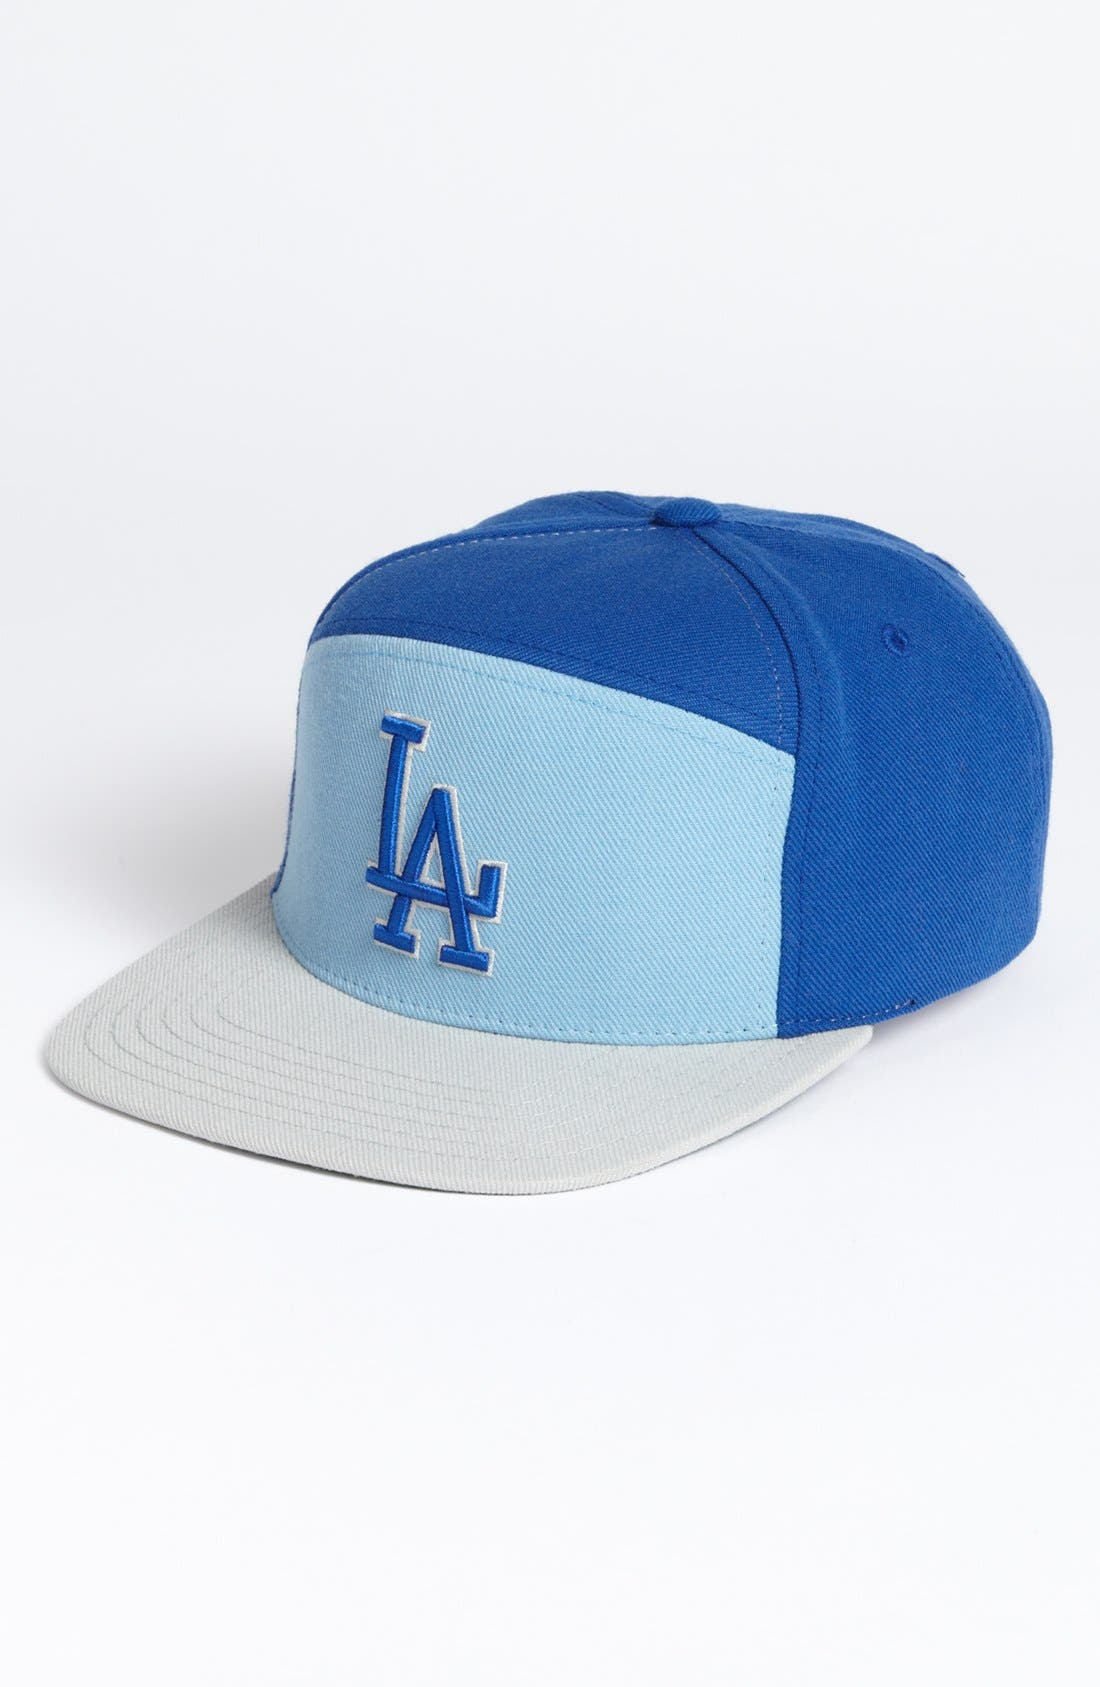 Main Image - American Needle 'Los Angeles Dodgers - Ante' Snapback Ball Cap